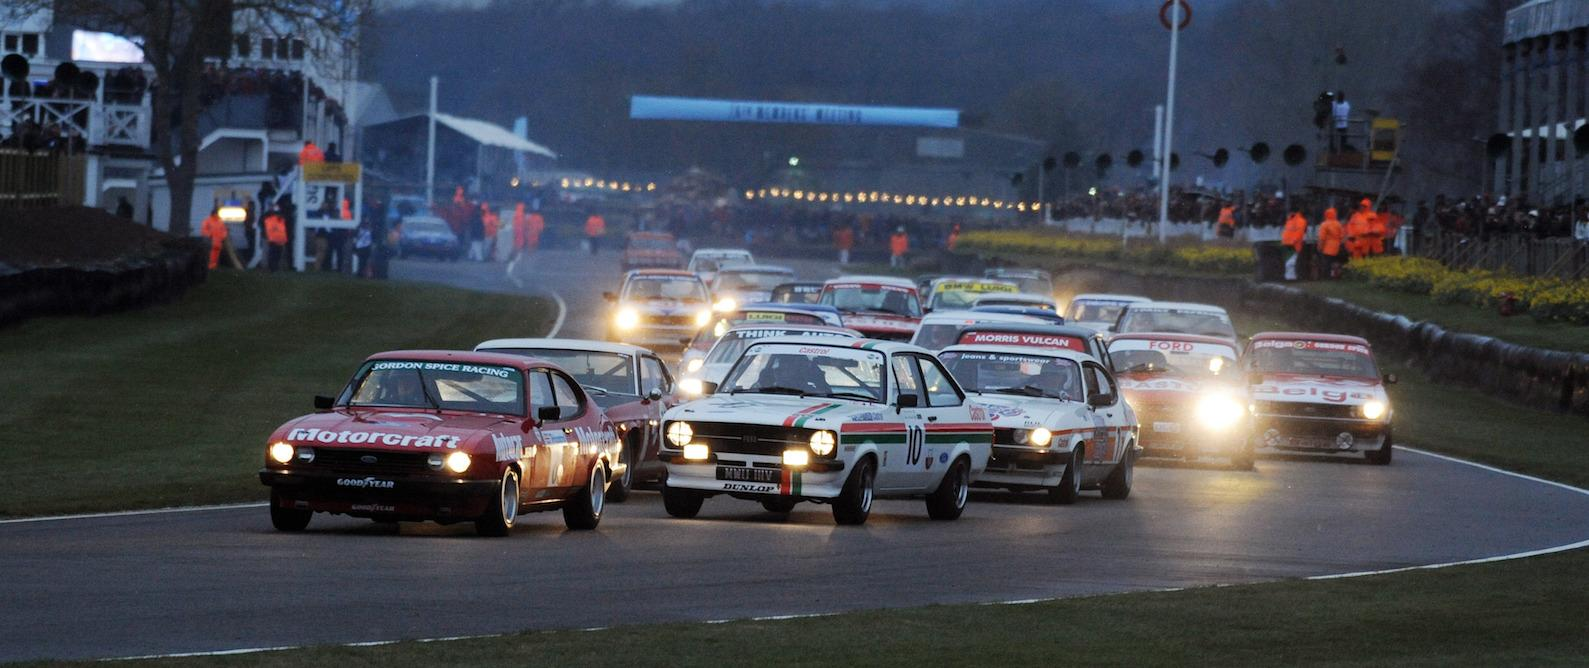 Action in the snow at Goodwood 76th Members' Meeting